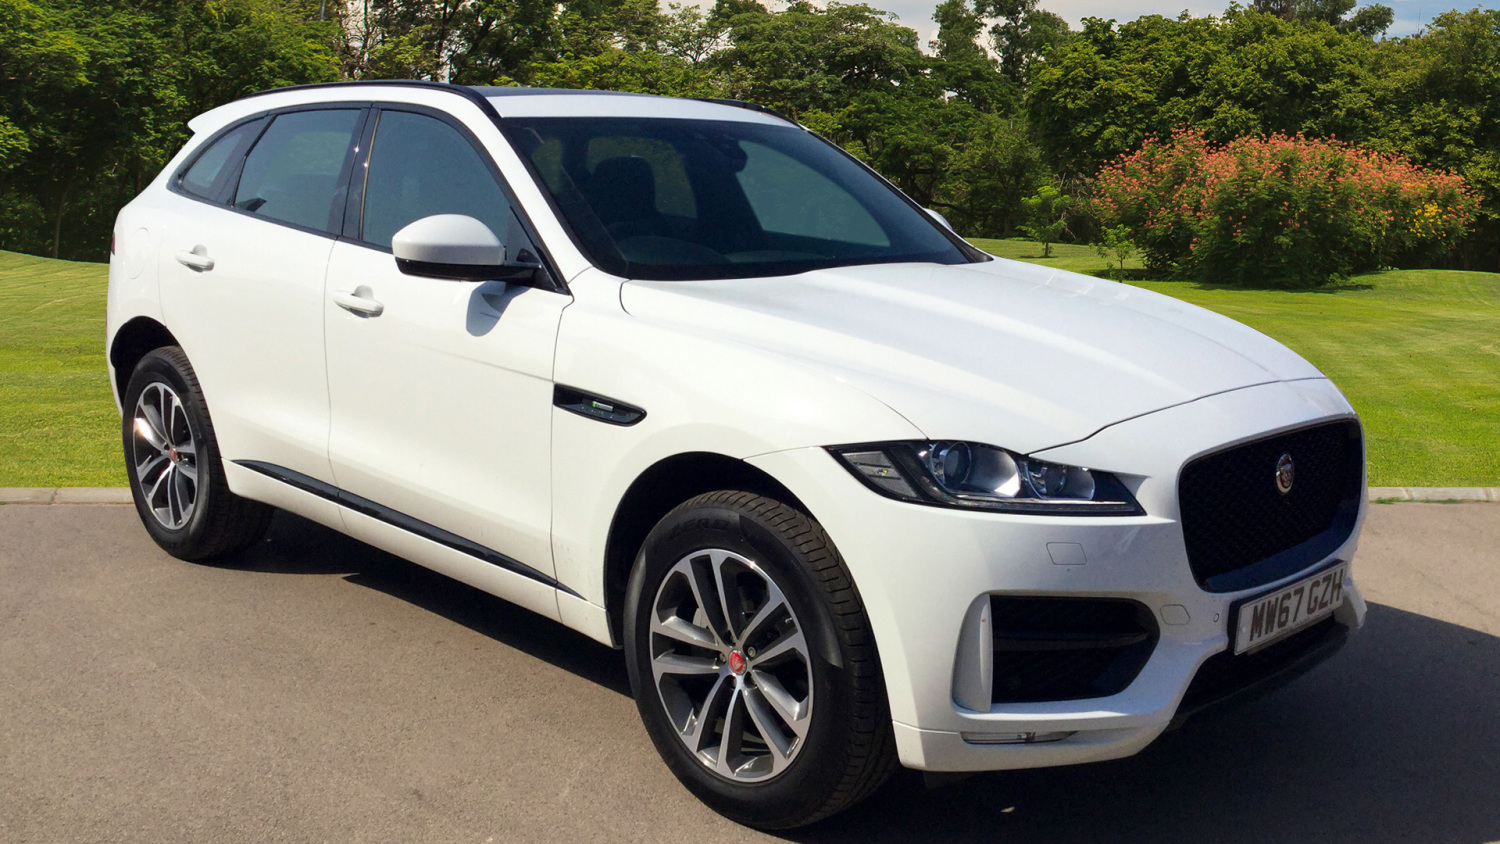 Used Jaguar F Pace 20d R Sport 5dr Auto Awd Diesel Estate For Sale Automatic Headlight Reminder